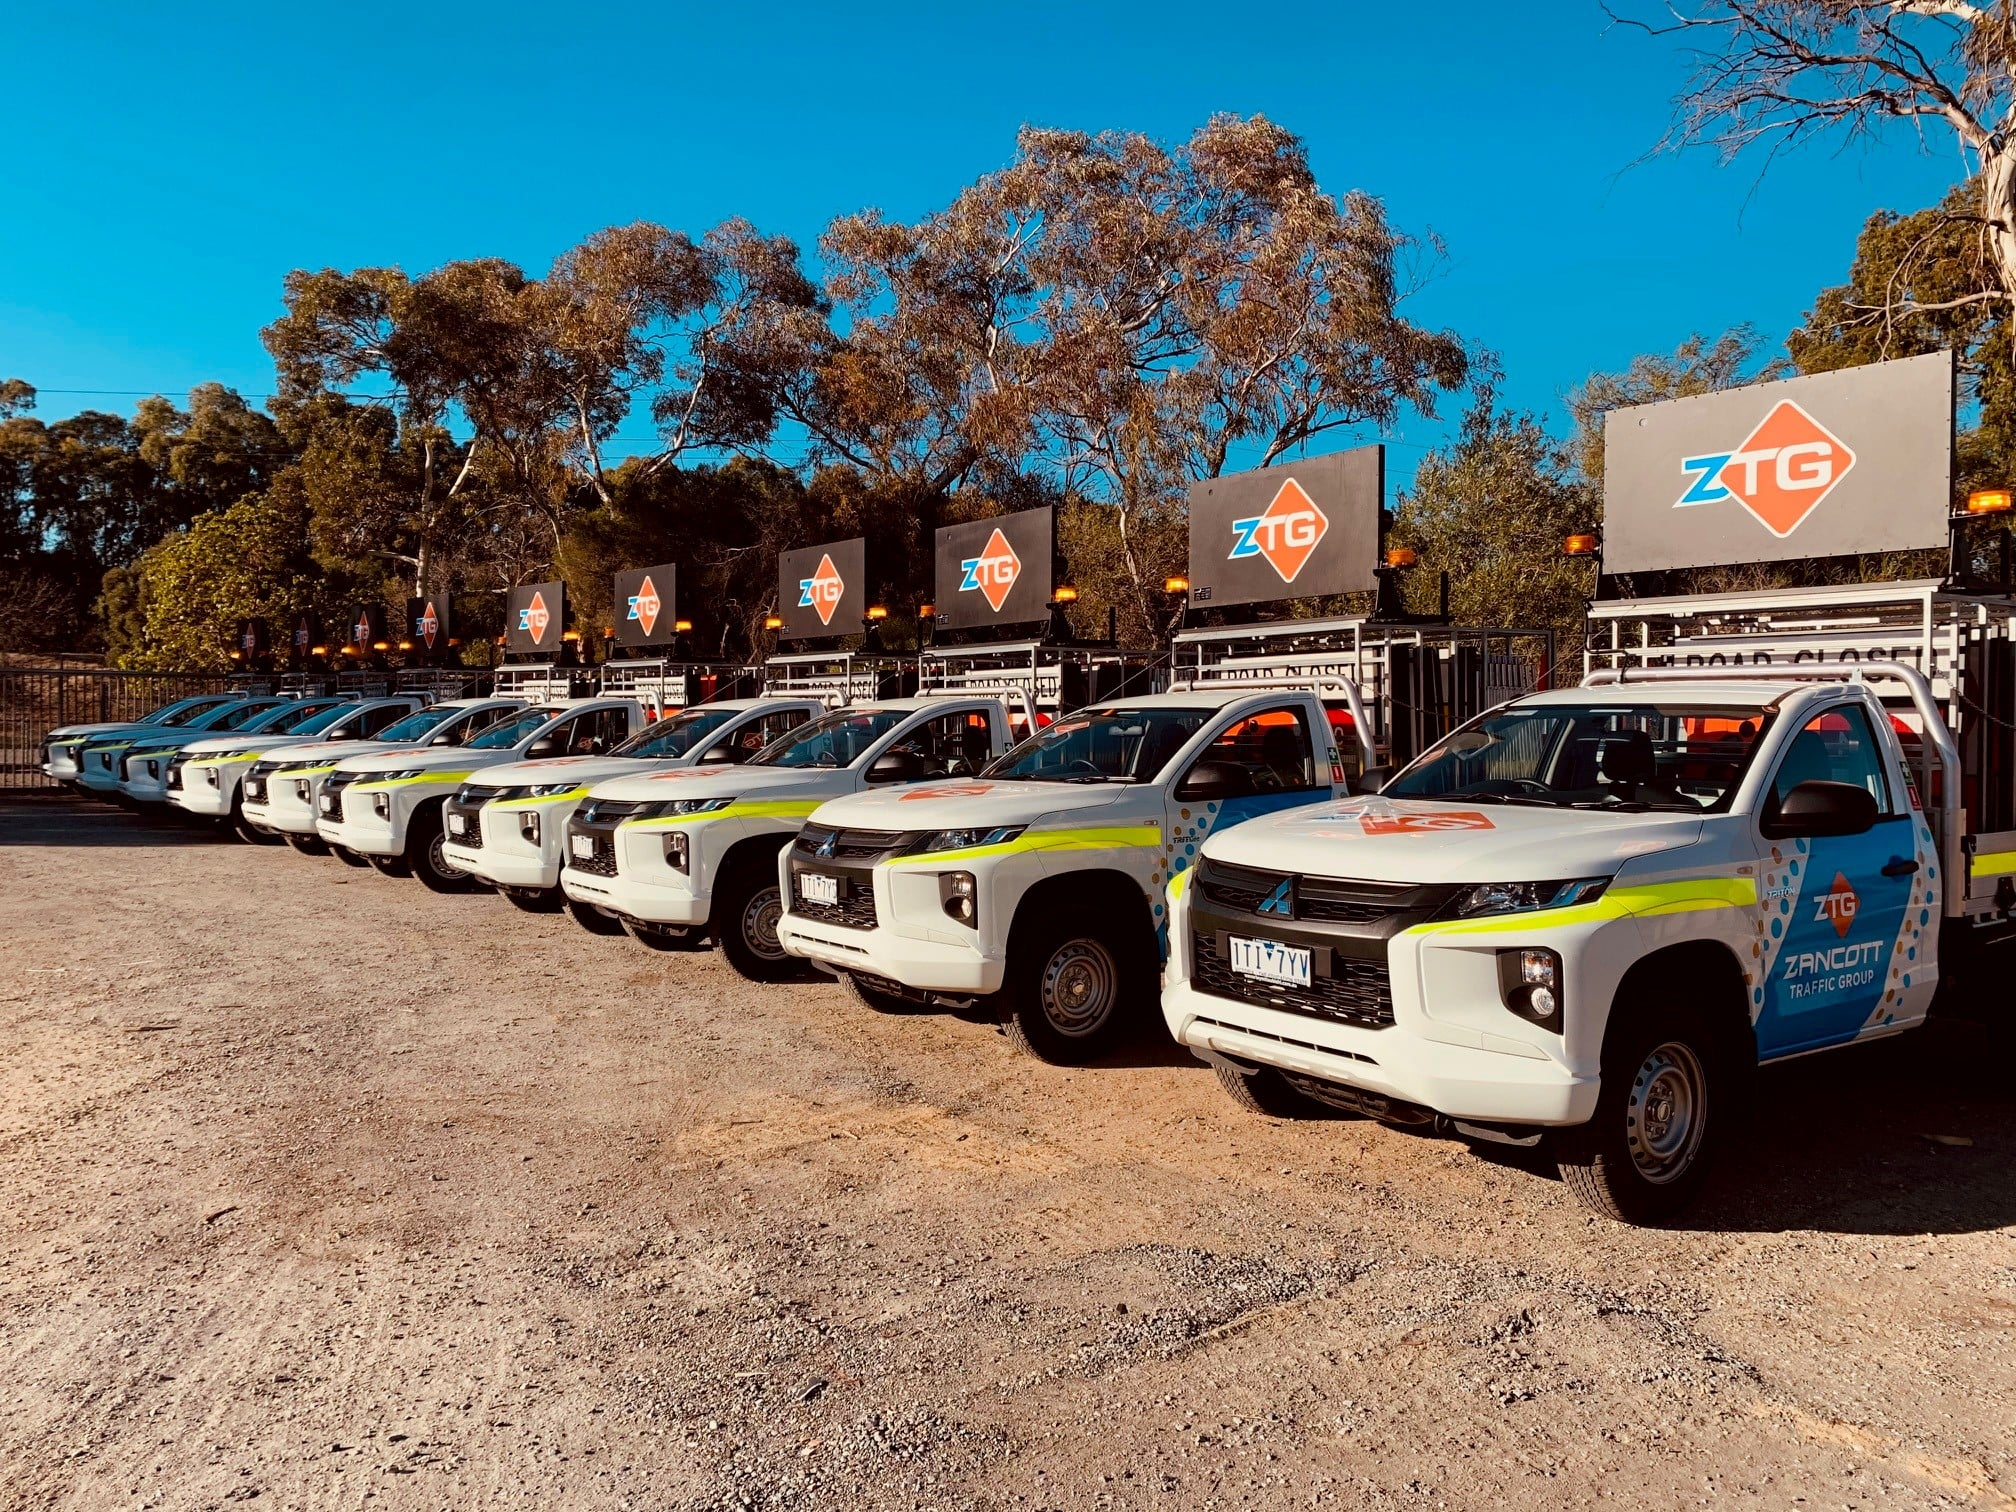 """Featured image for """"Zancott Traffic hit the road with custom designed vehicle signs across their entire new fleet of traffic management utes."""""""